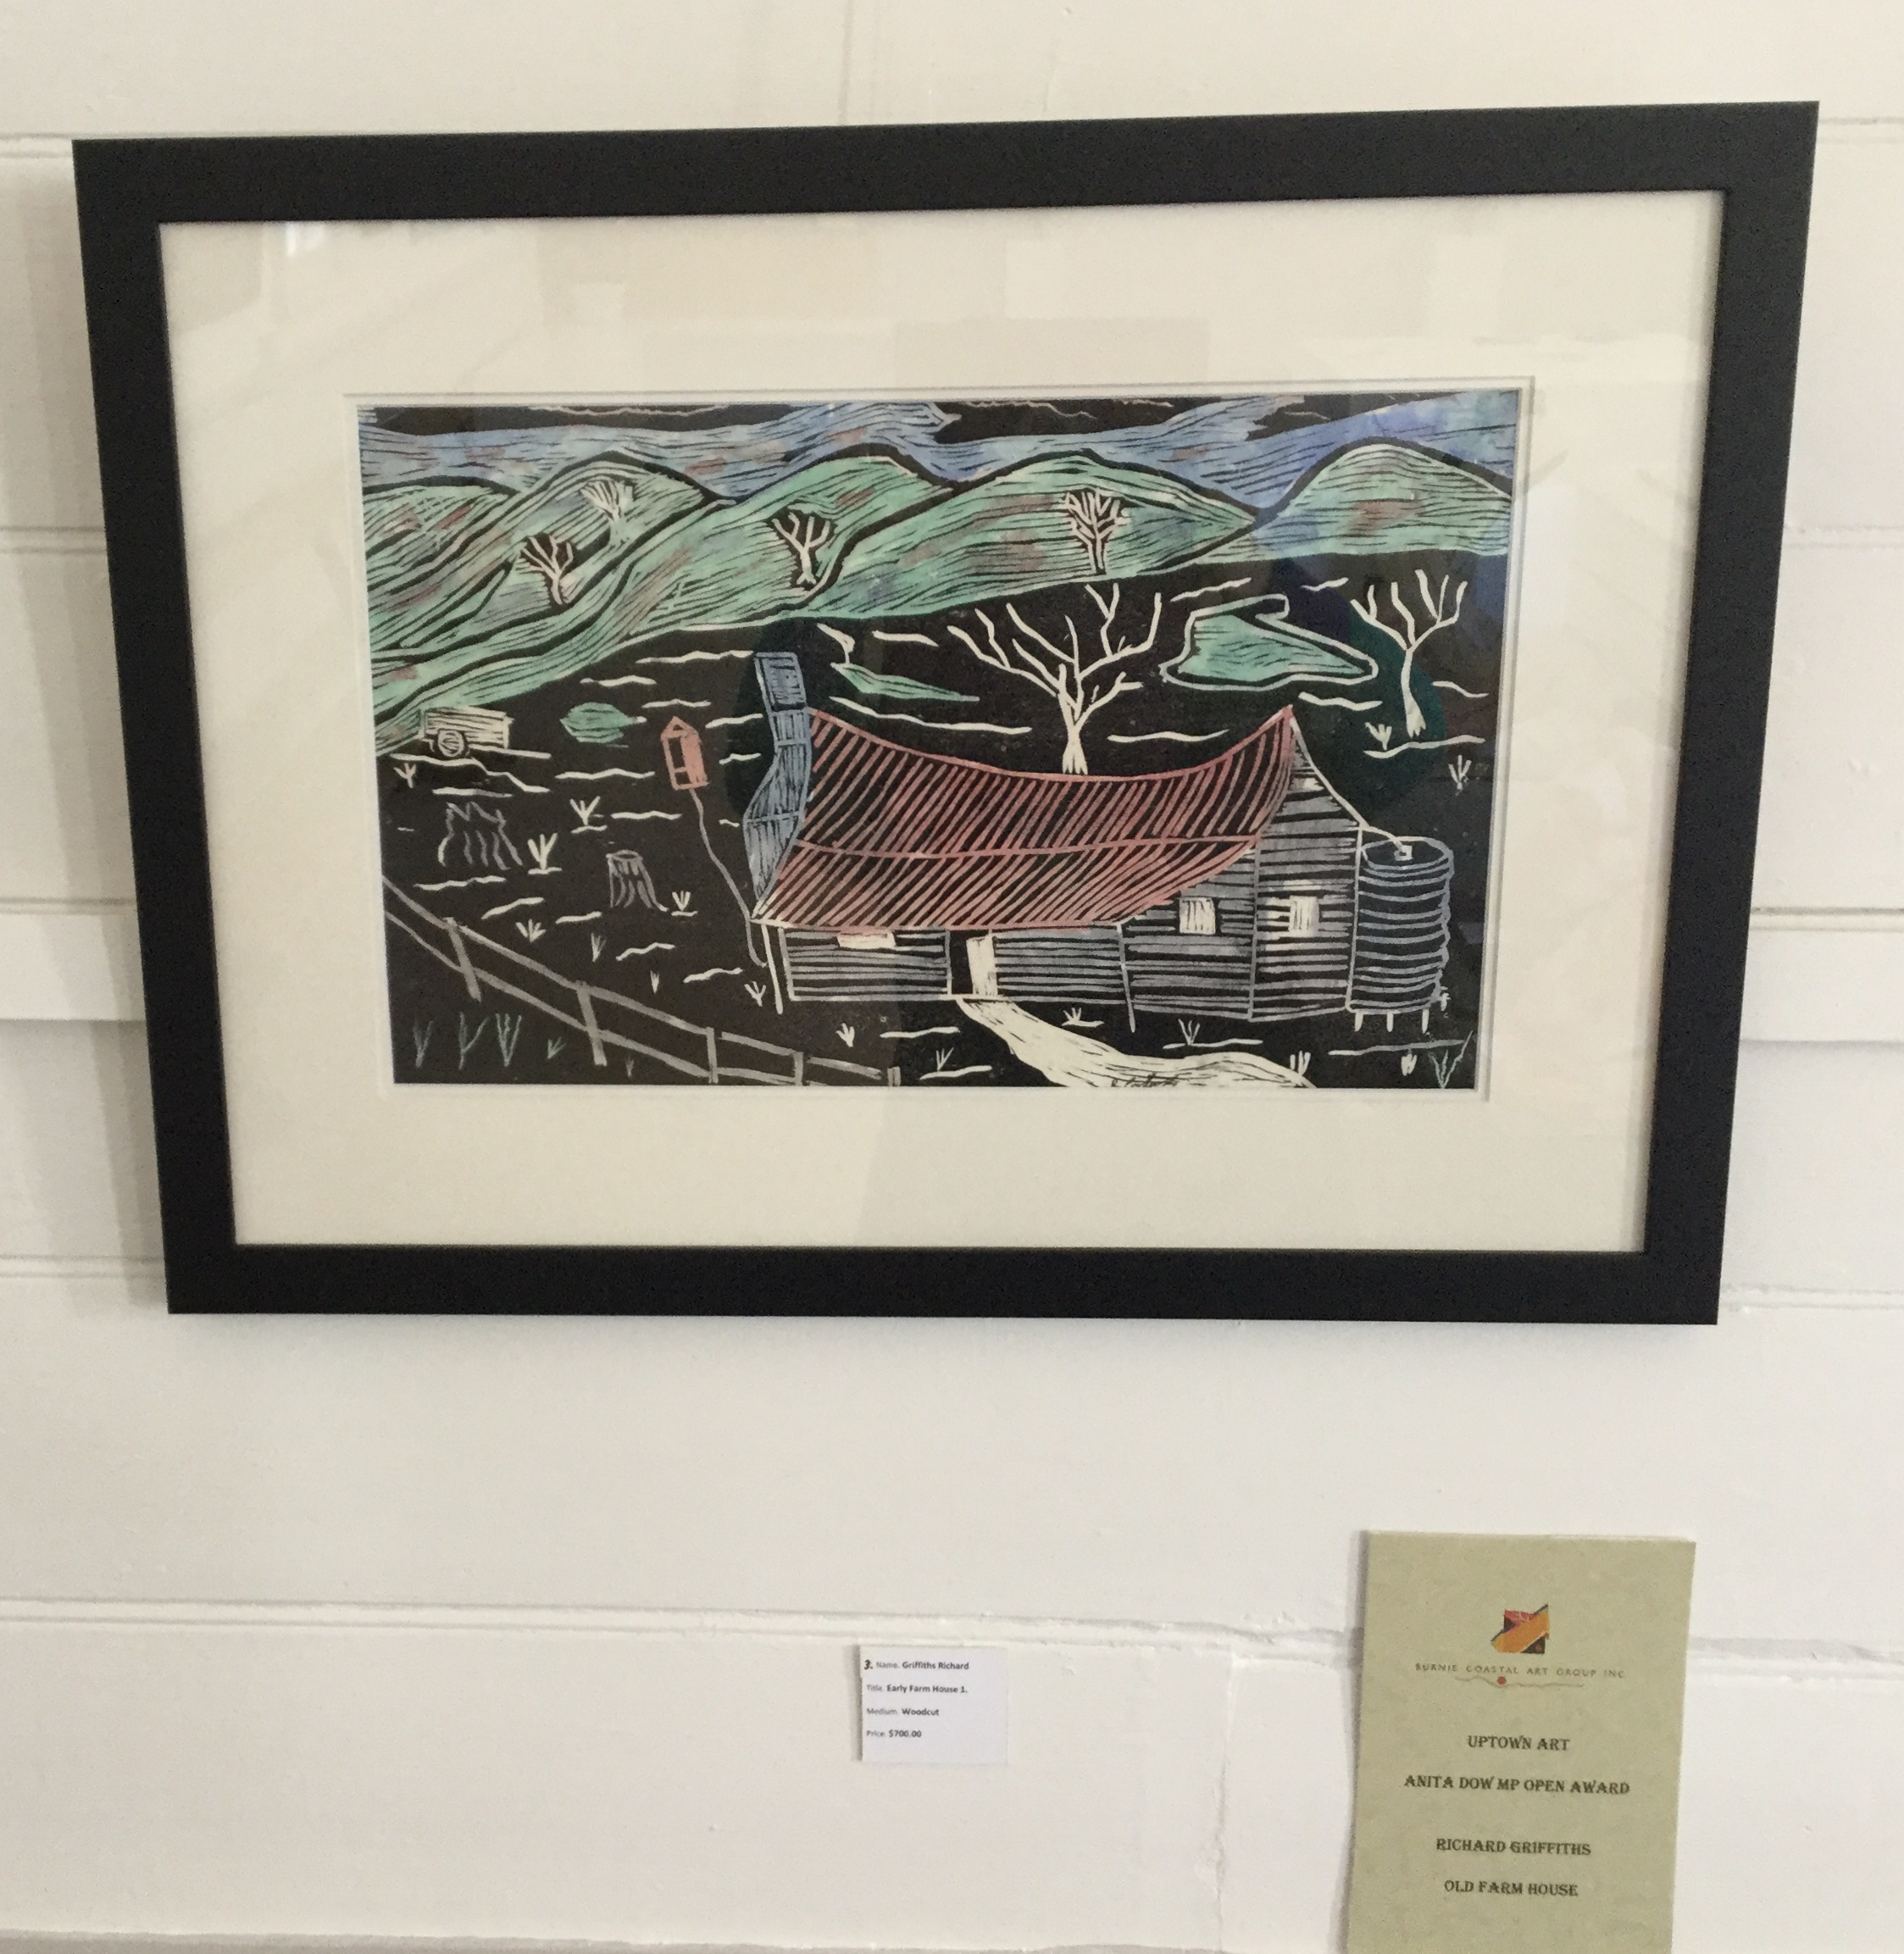 Anita Dow Award winning painting Old Farm House a wood block print by Richard Griffiths